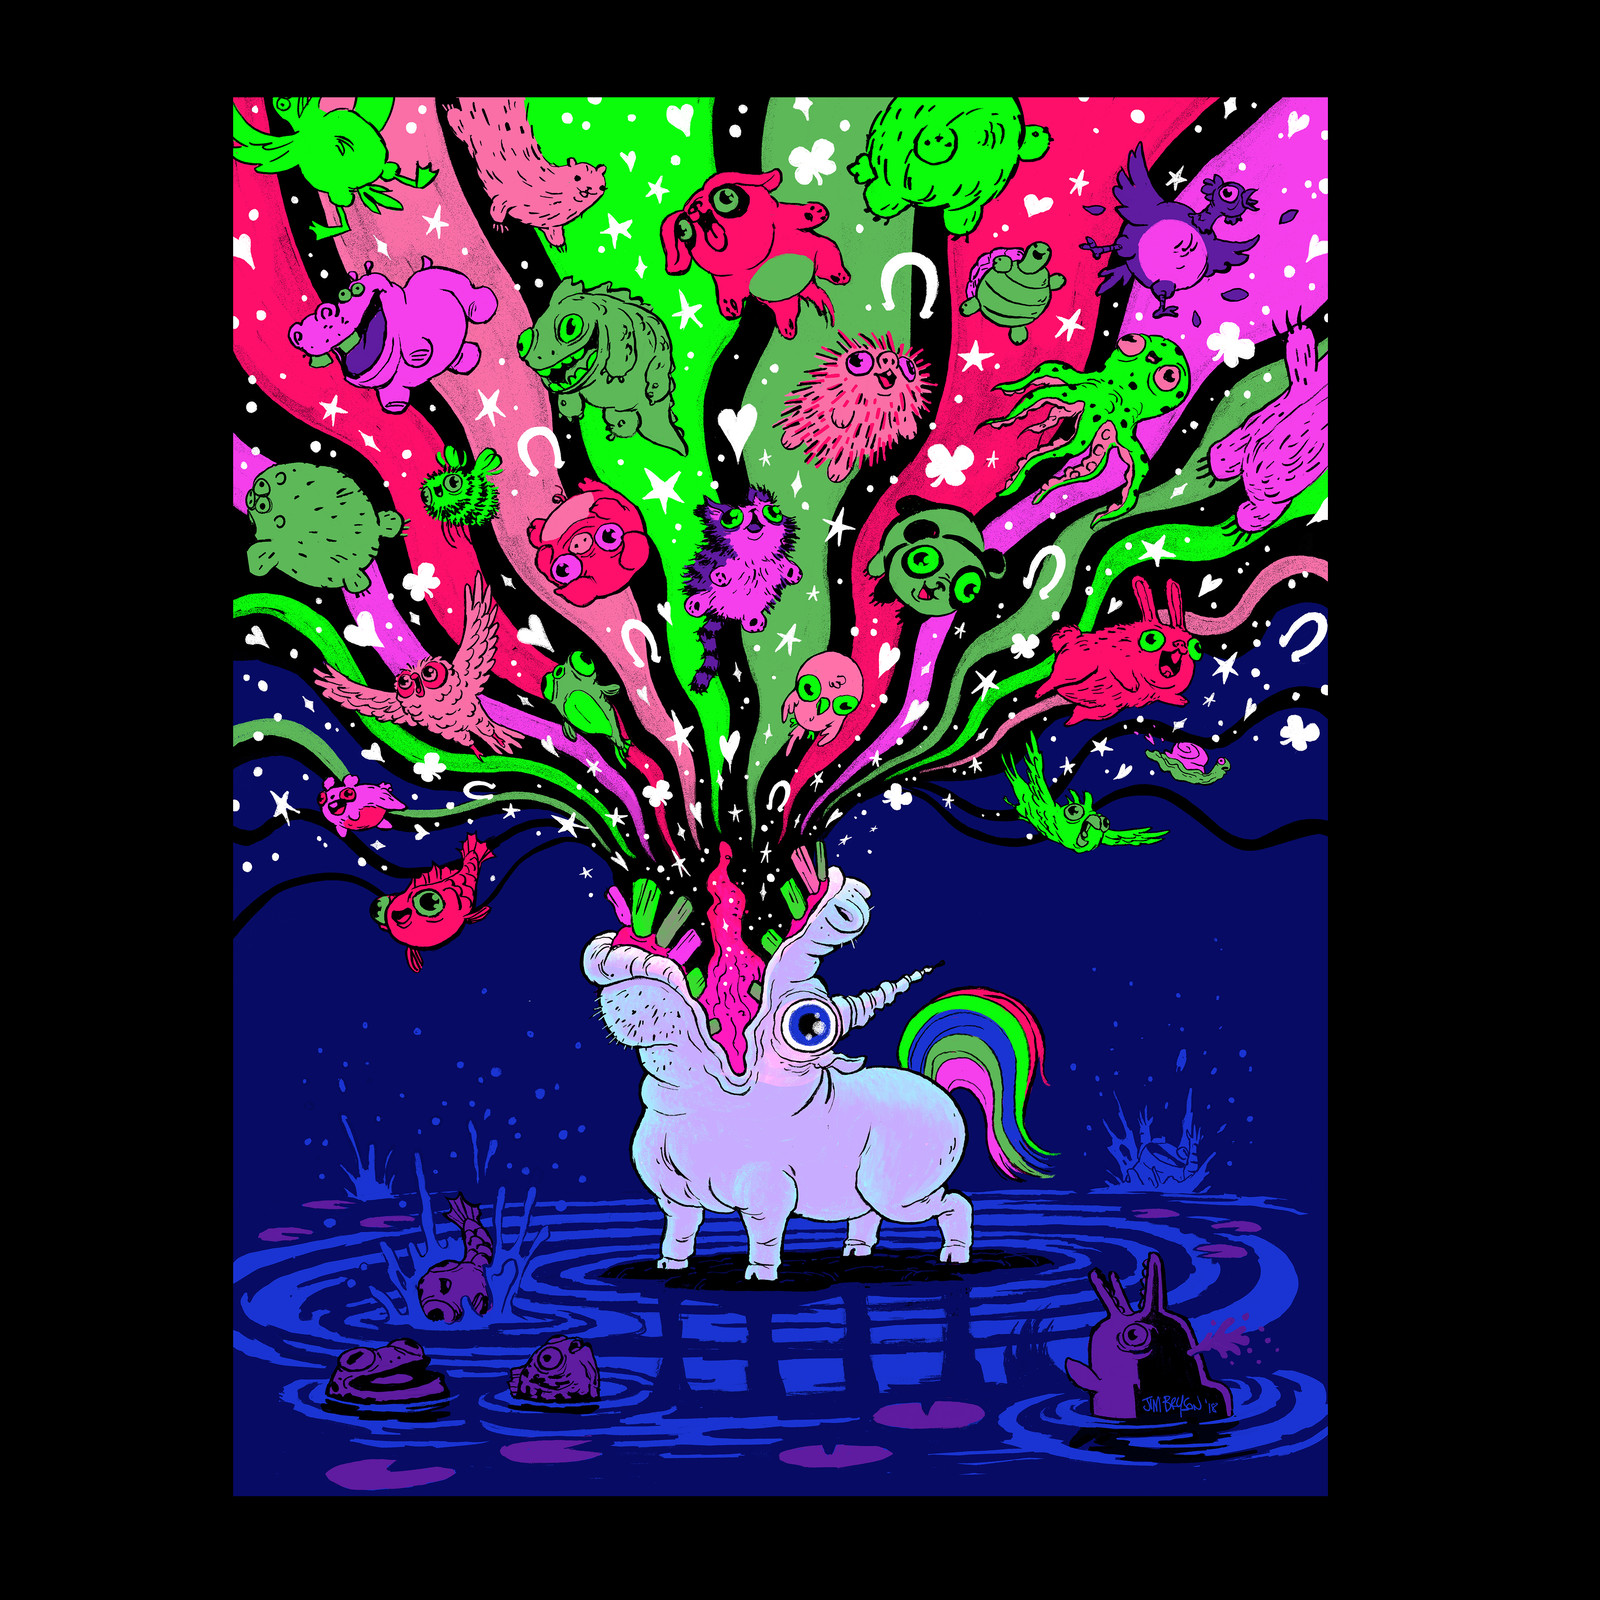 Barfing Unicorn